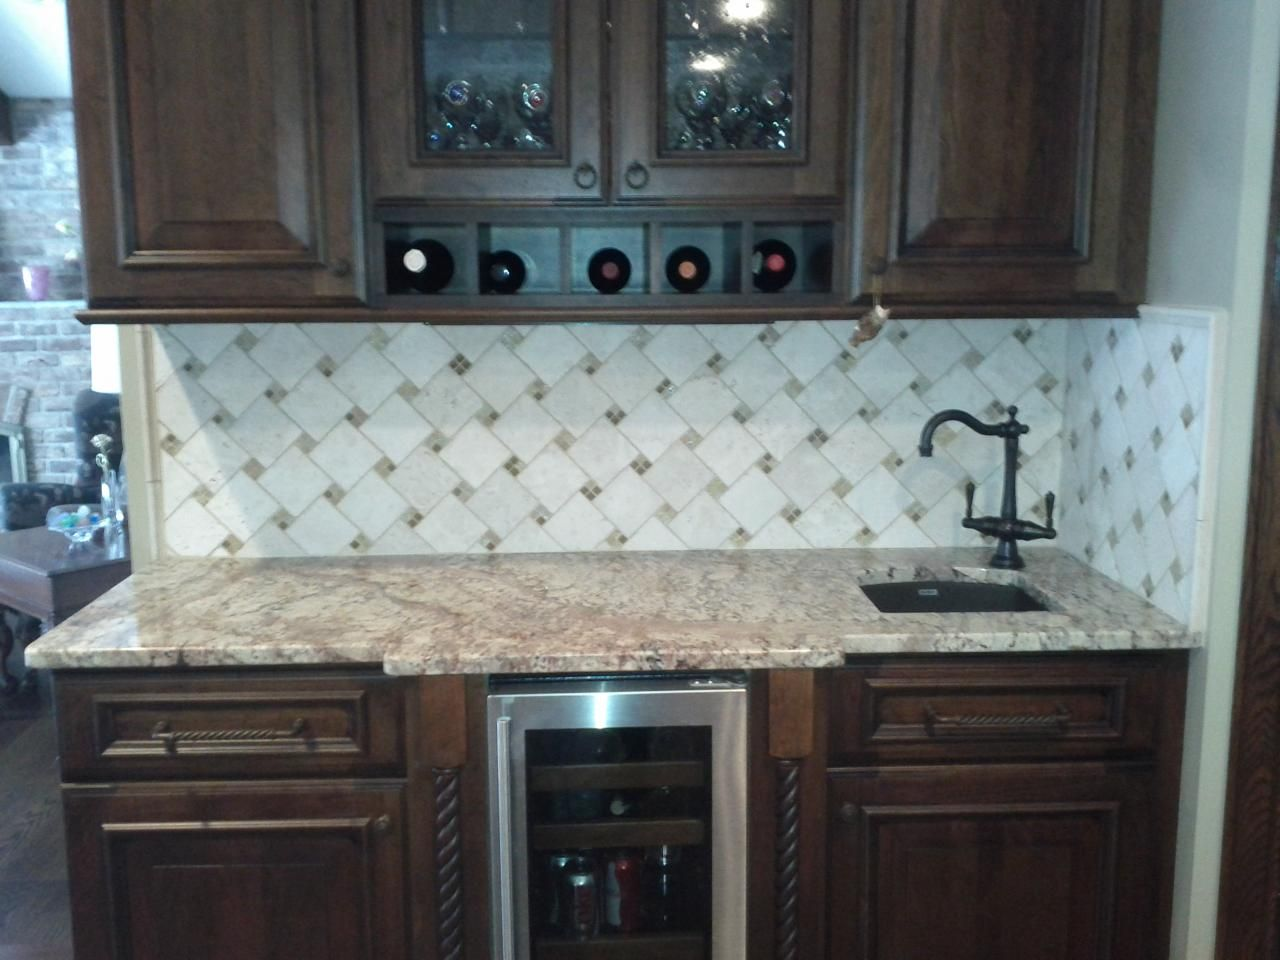 kitchen tile backslash kitchen tile backsplash 10 best images about kitchen tile backslash on Pinterest Kitchen backsplash design Marbles and Kitchen backsplash